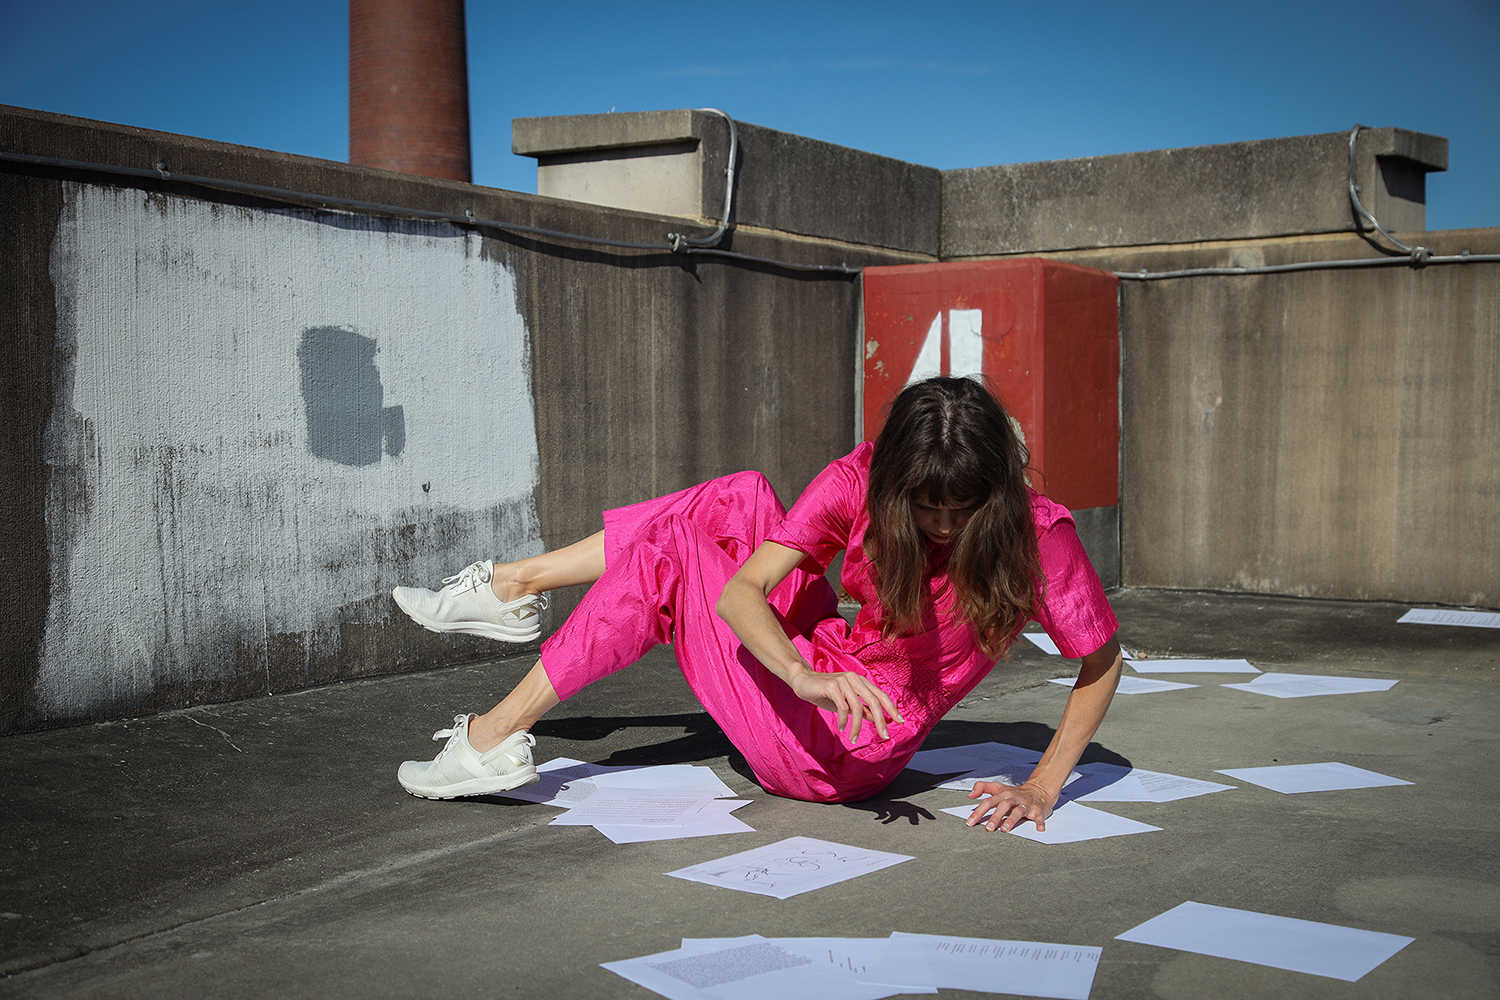 Person with long brown hair, wearing a pink jumpsuit and white sneakers, sustains a position in the corner of a concrete parking garage with papers strewn about.